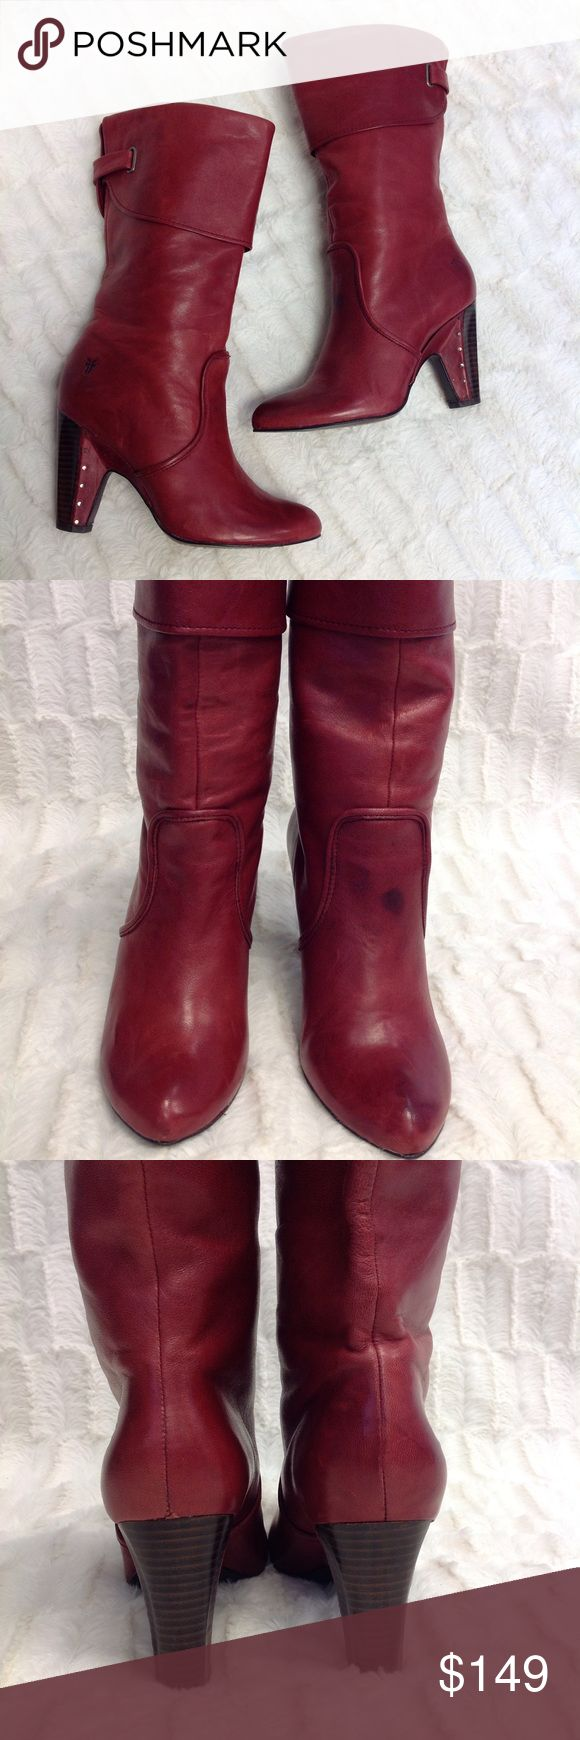 """FRYE Boots Pu87 ❤️❤️❤️These red leather boots by Frye are so smooth! They are a distressed brick red leather with a faux fold-over. It measures to come up about 10"""" on the calf. The stacked heel is lined with the same red leather and silver flush studs! ***Gently pre-loved. Inspect image #2 for noticeable spot. Very minimal wear on heel and soles! Frye Shoes Heeled Boots"""